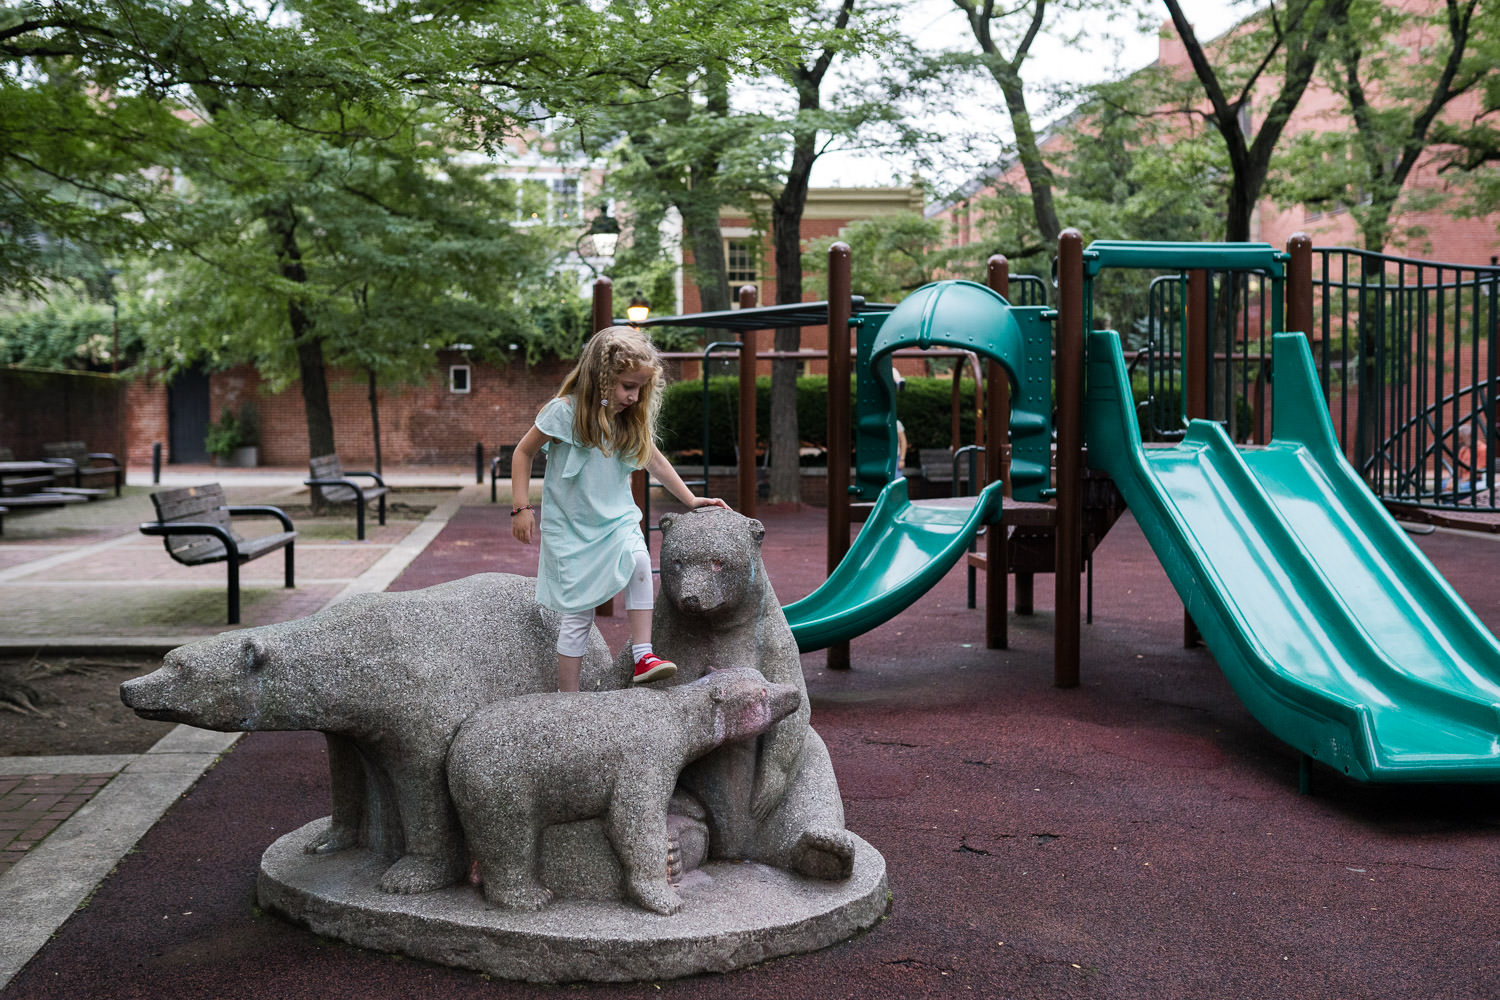 A little girl climbs a statue of three bears at a playground.